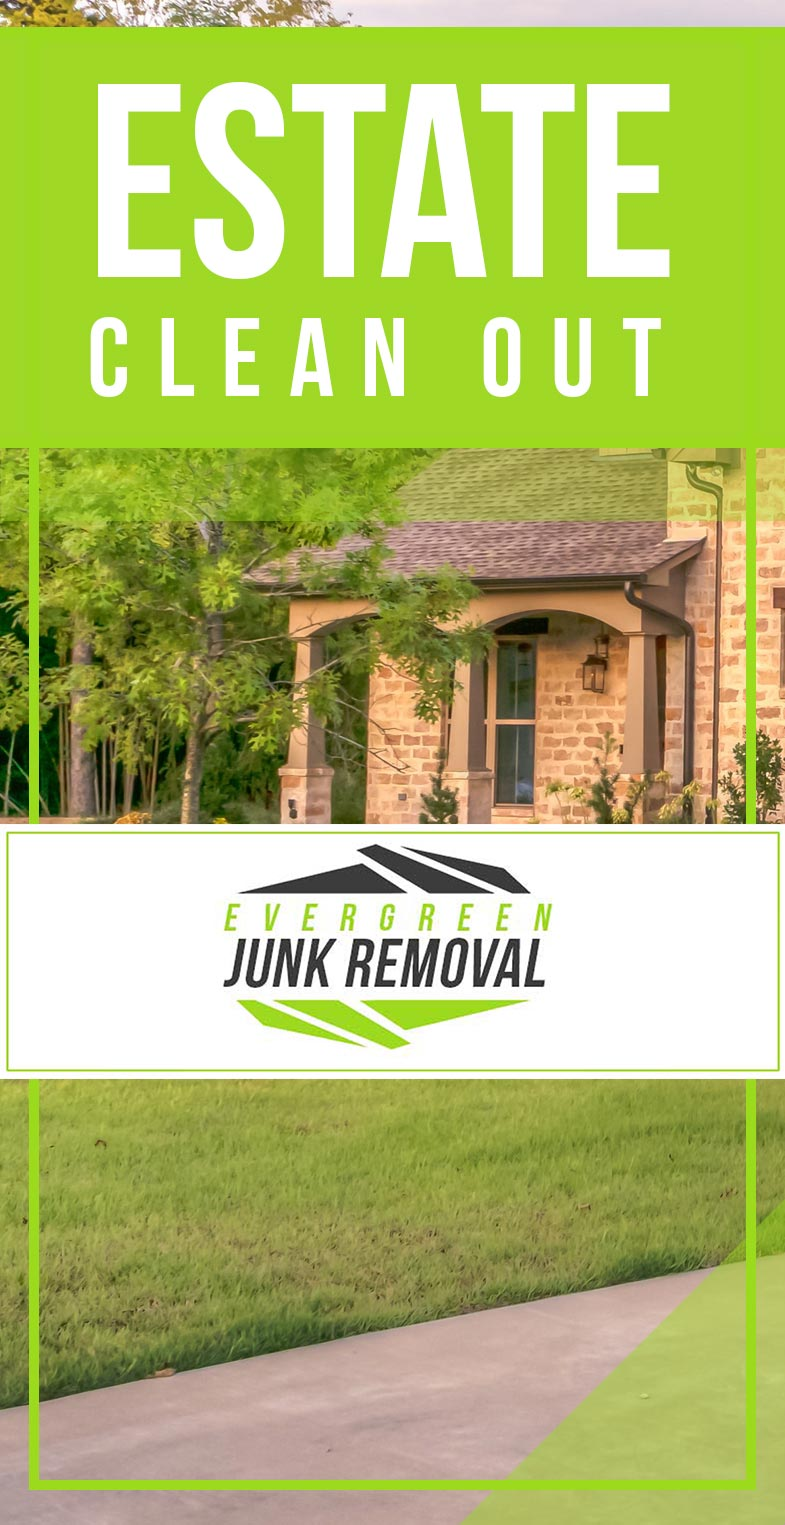 Denton Property Clean Out